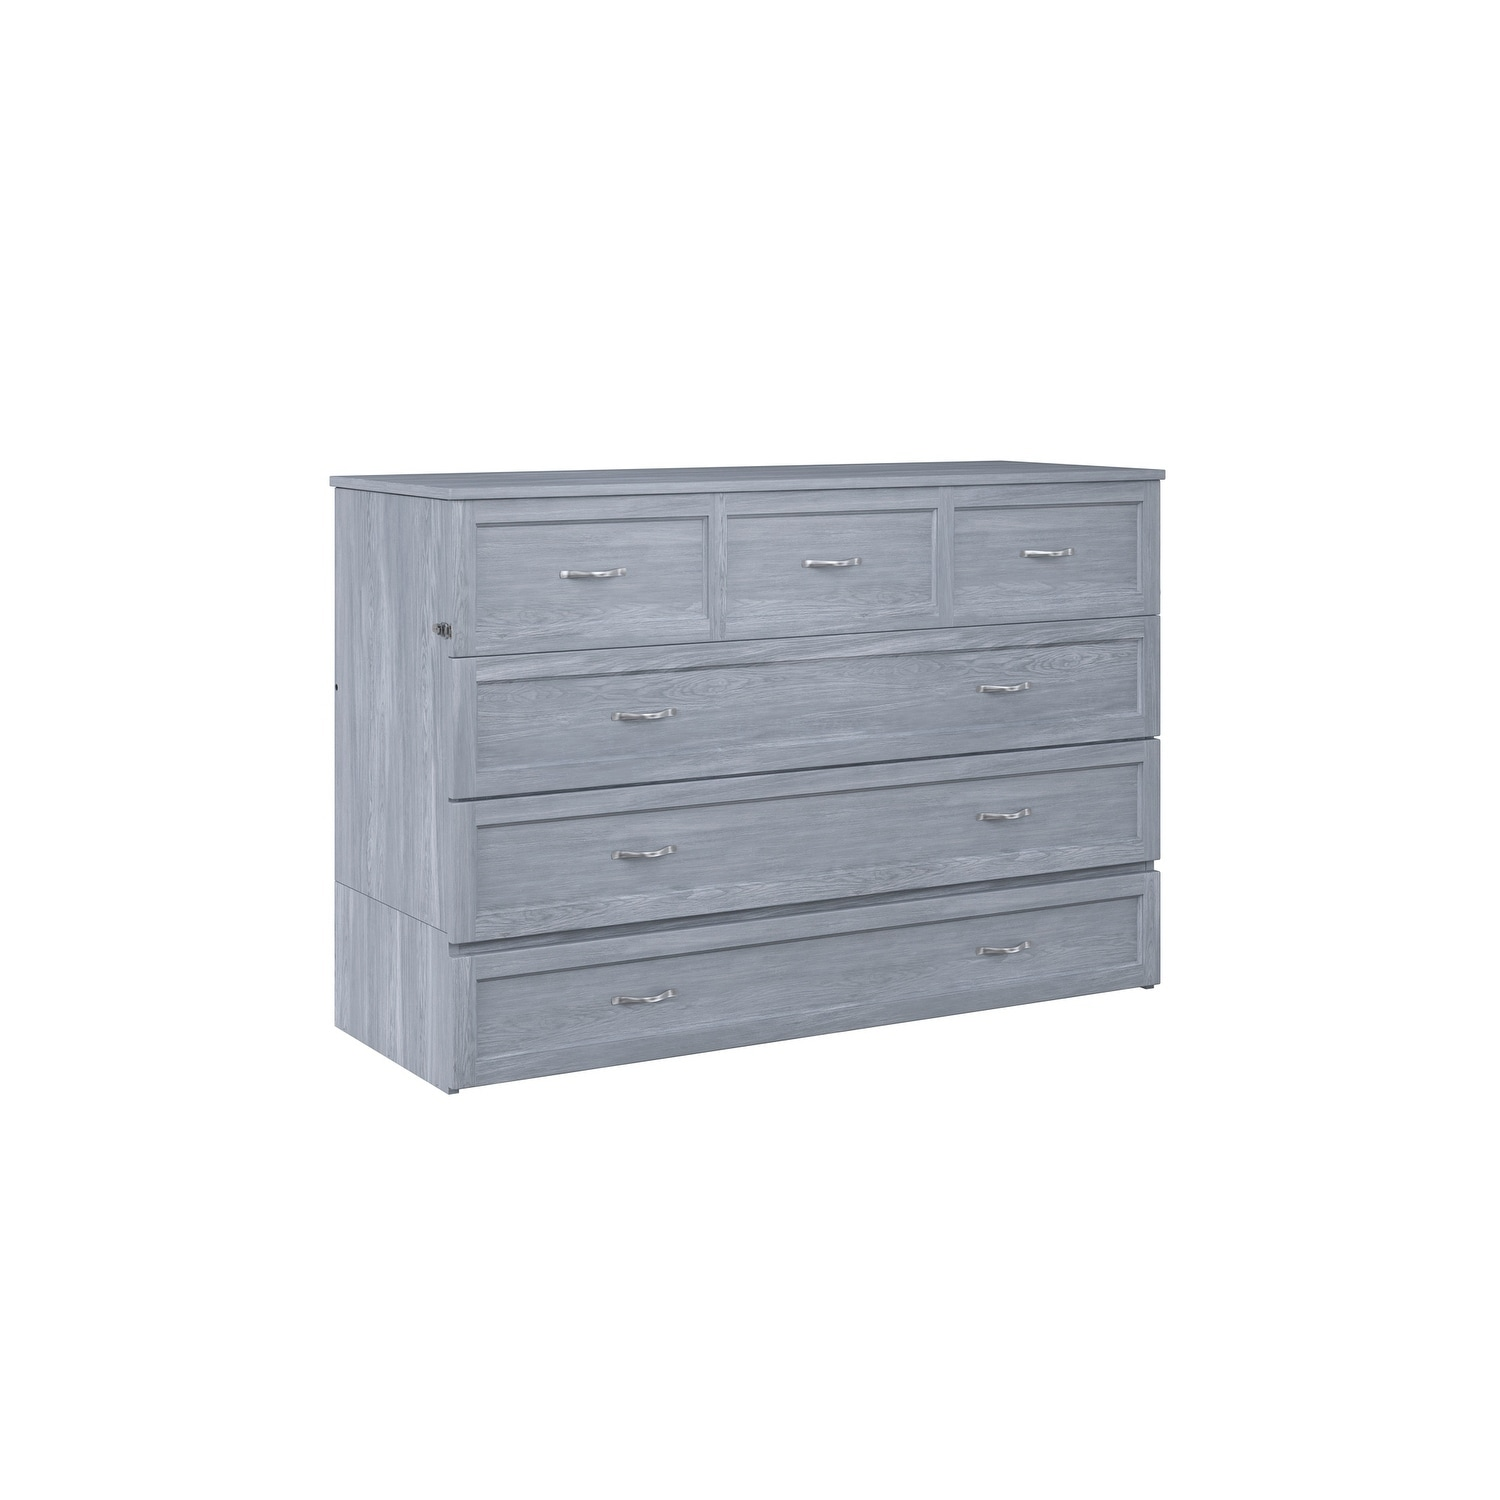 super popular 3964a 5e4a5 Deerfield Murphy Bed Chest Queen Driftwood with Charging Station